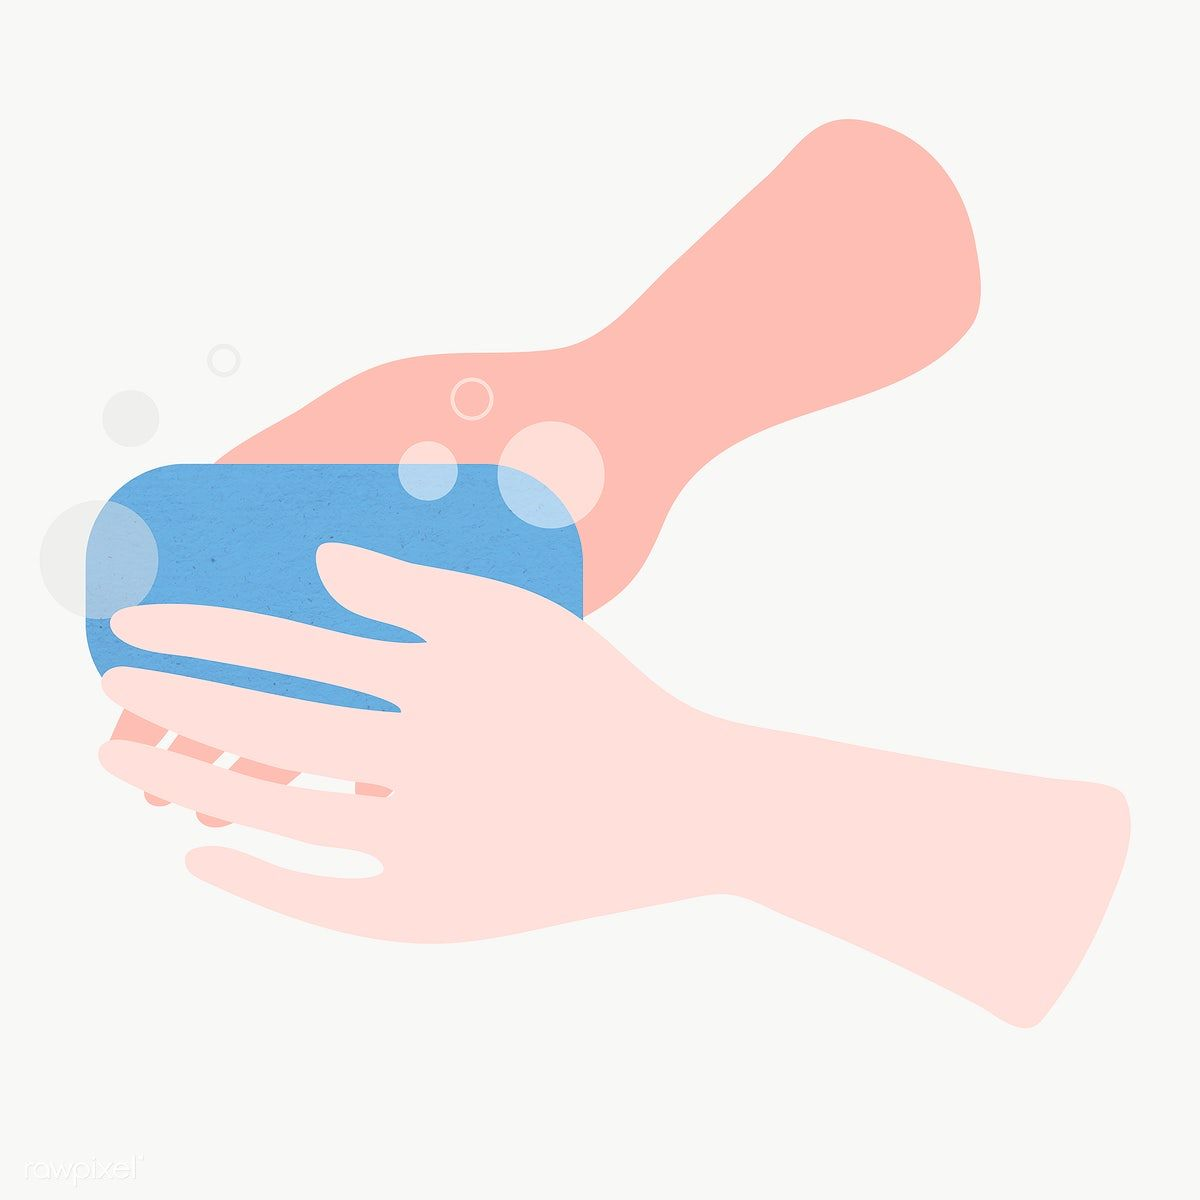 Pin On Les Meilleurs Gestes Download 91 wash your hands free vectors. pin on les meilleurs gestes